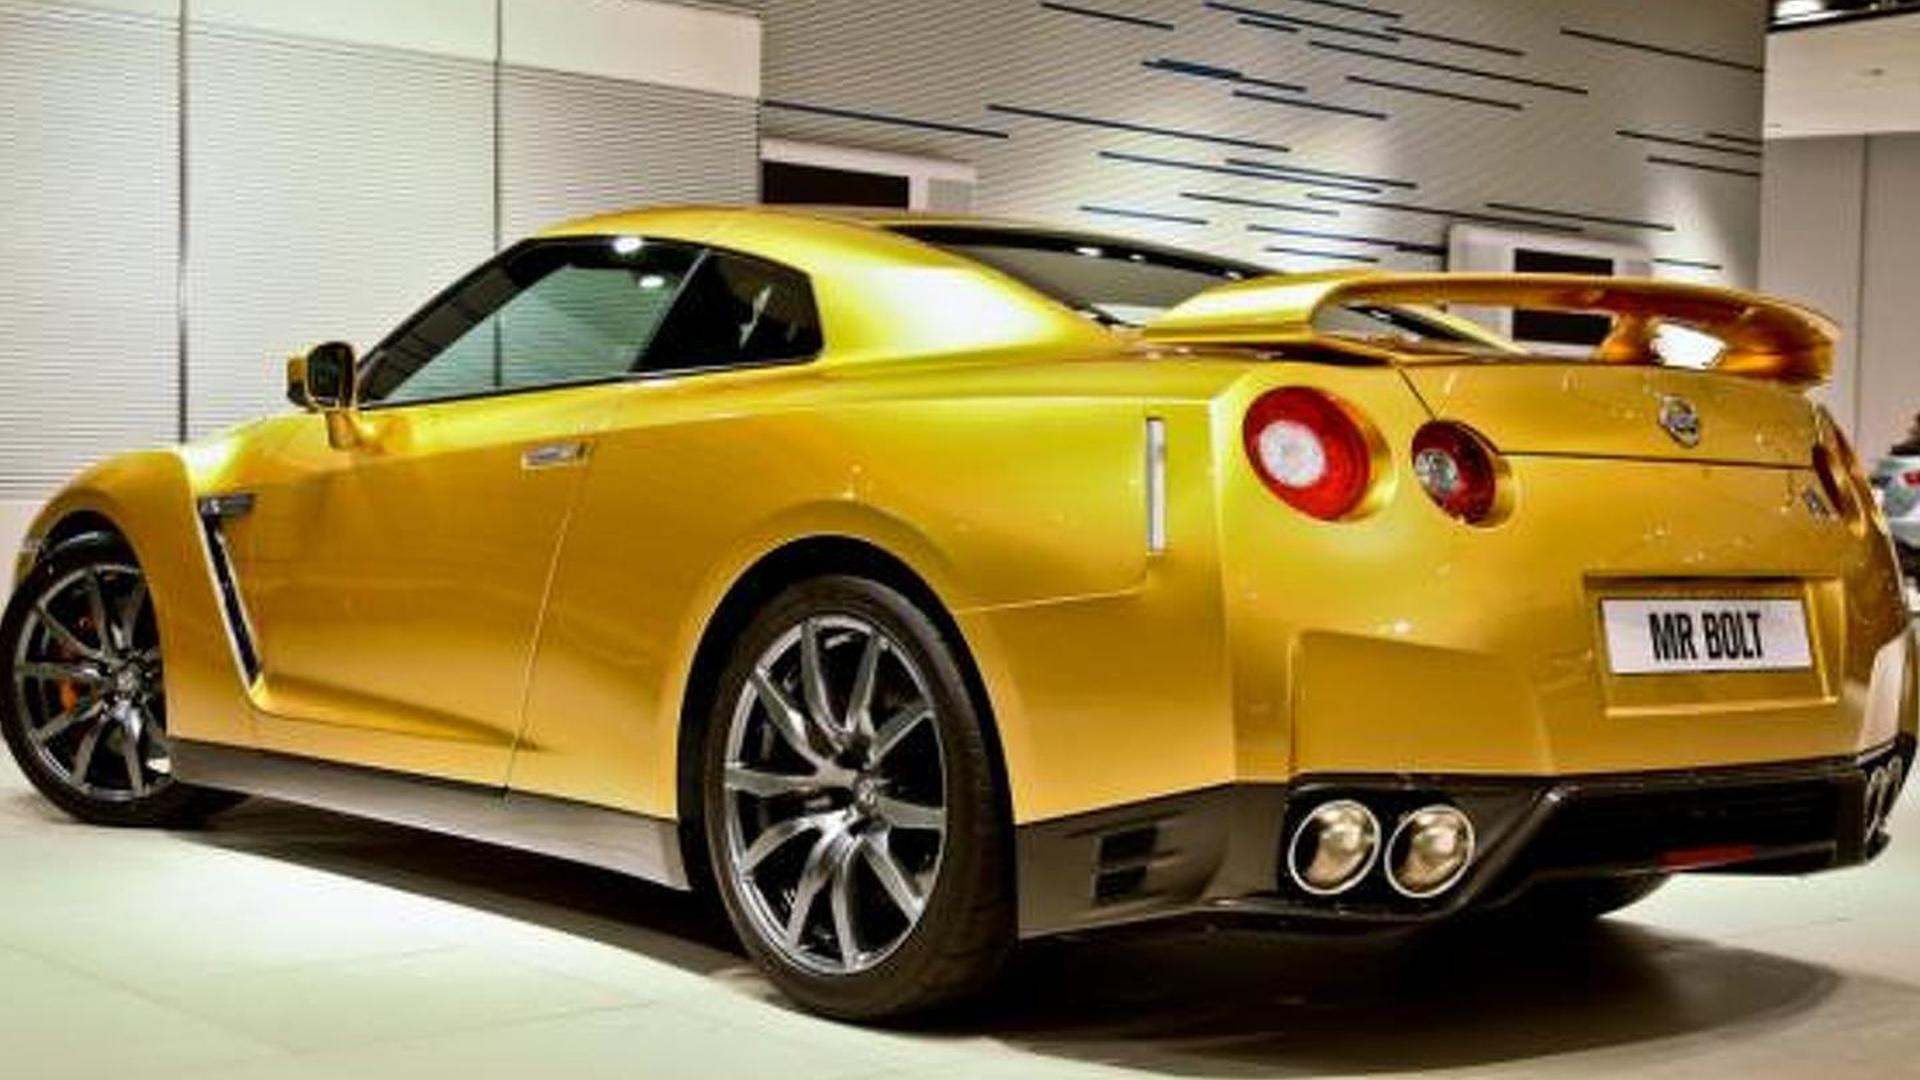 Nissan 'Bolt Gold' GT-R auction starts on Thursday [video]